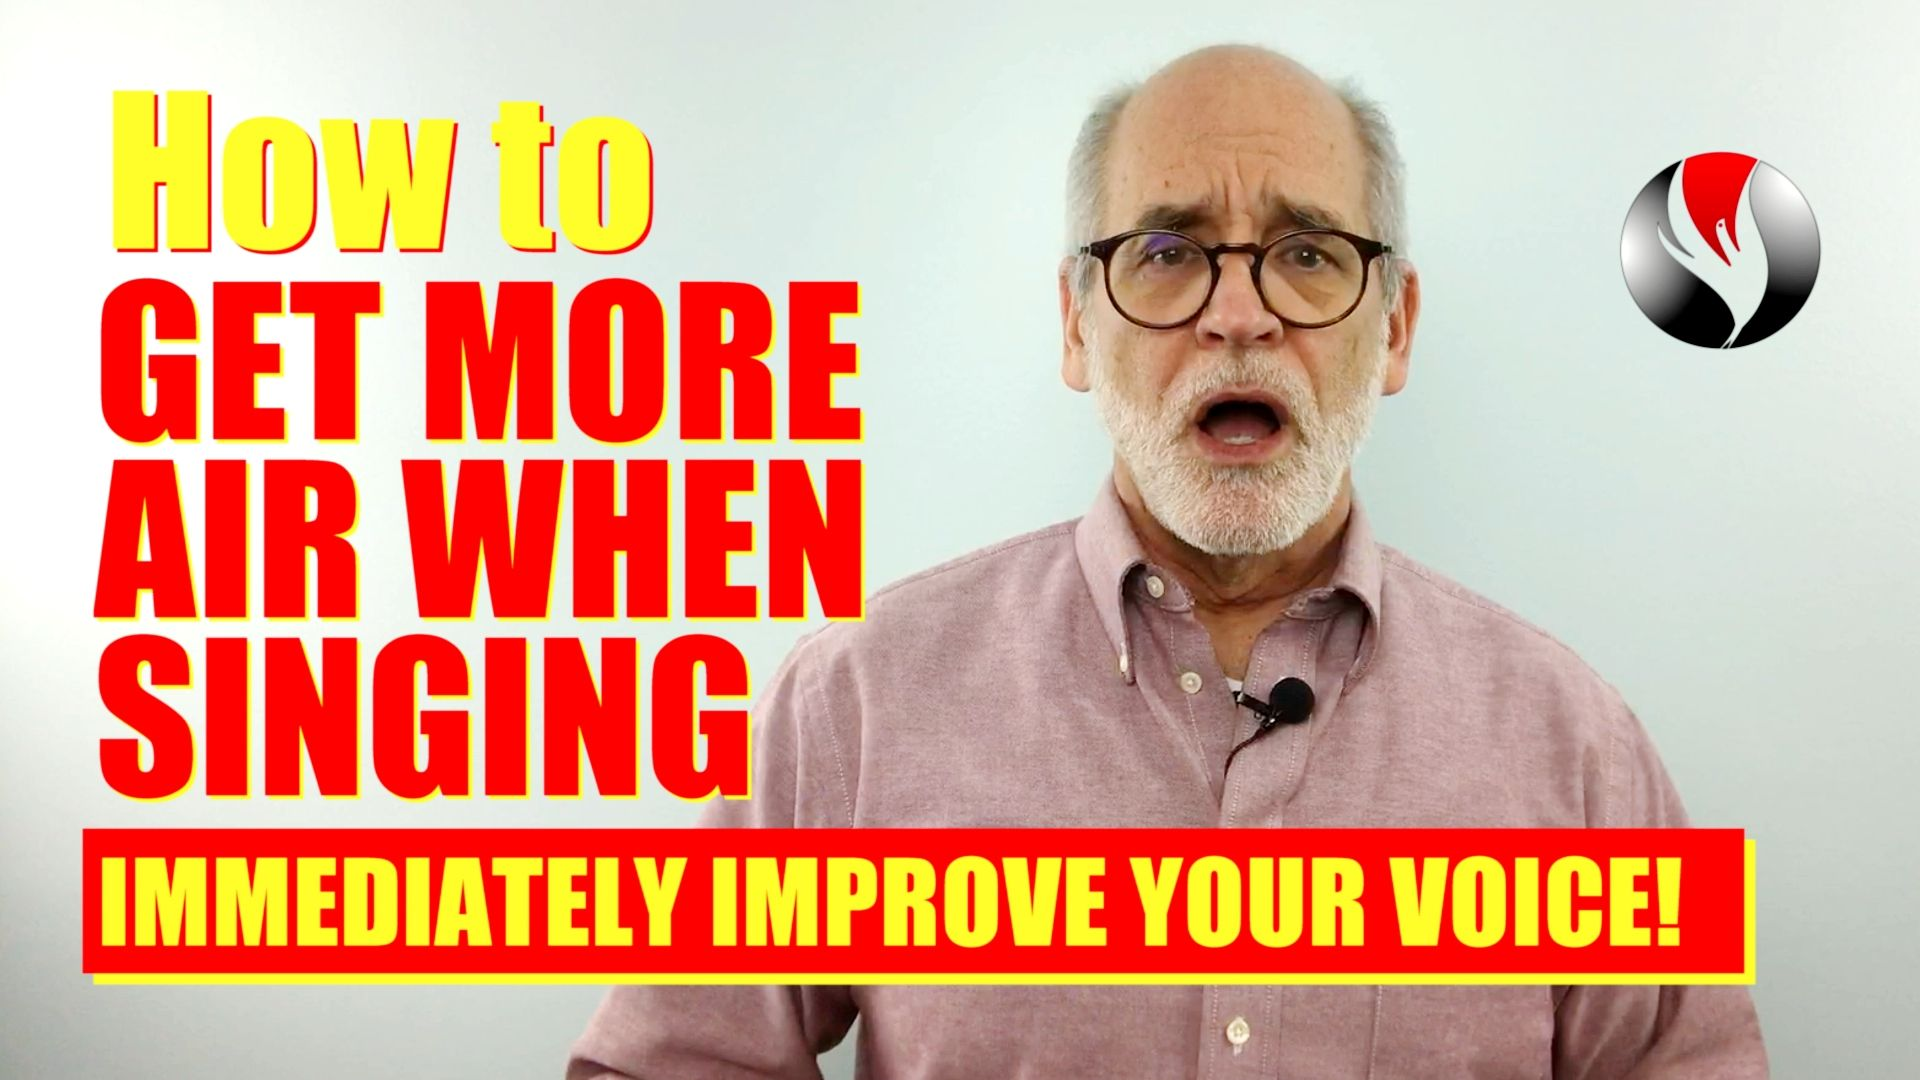 How To Get More Air When Singing Immediately Improve